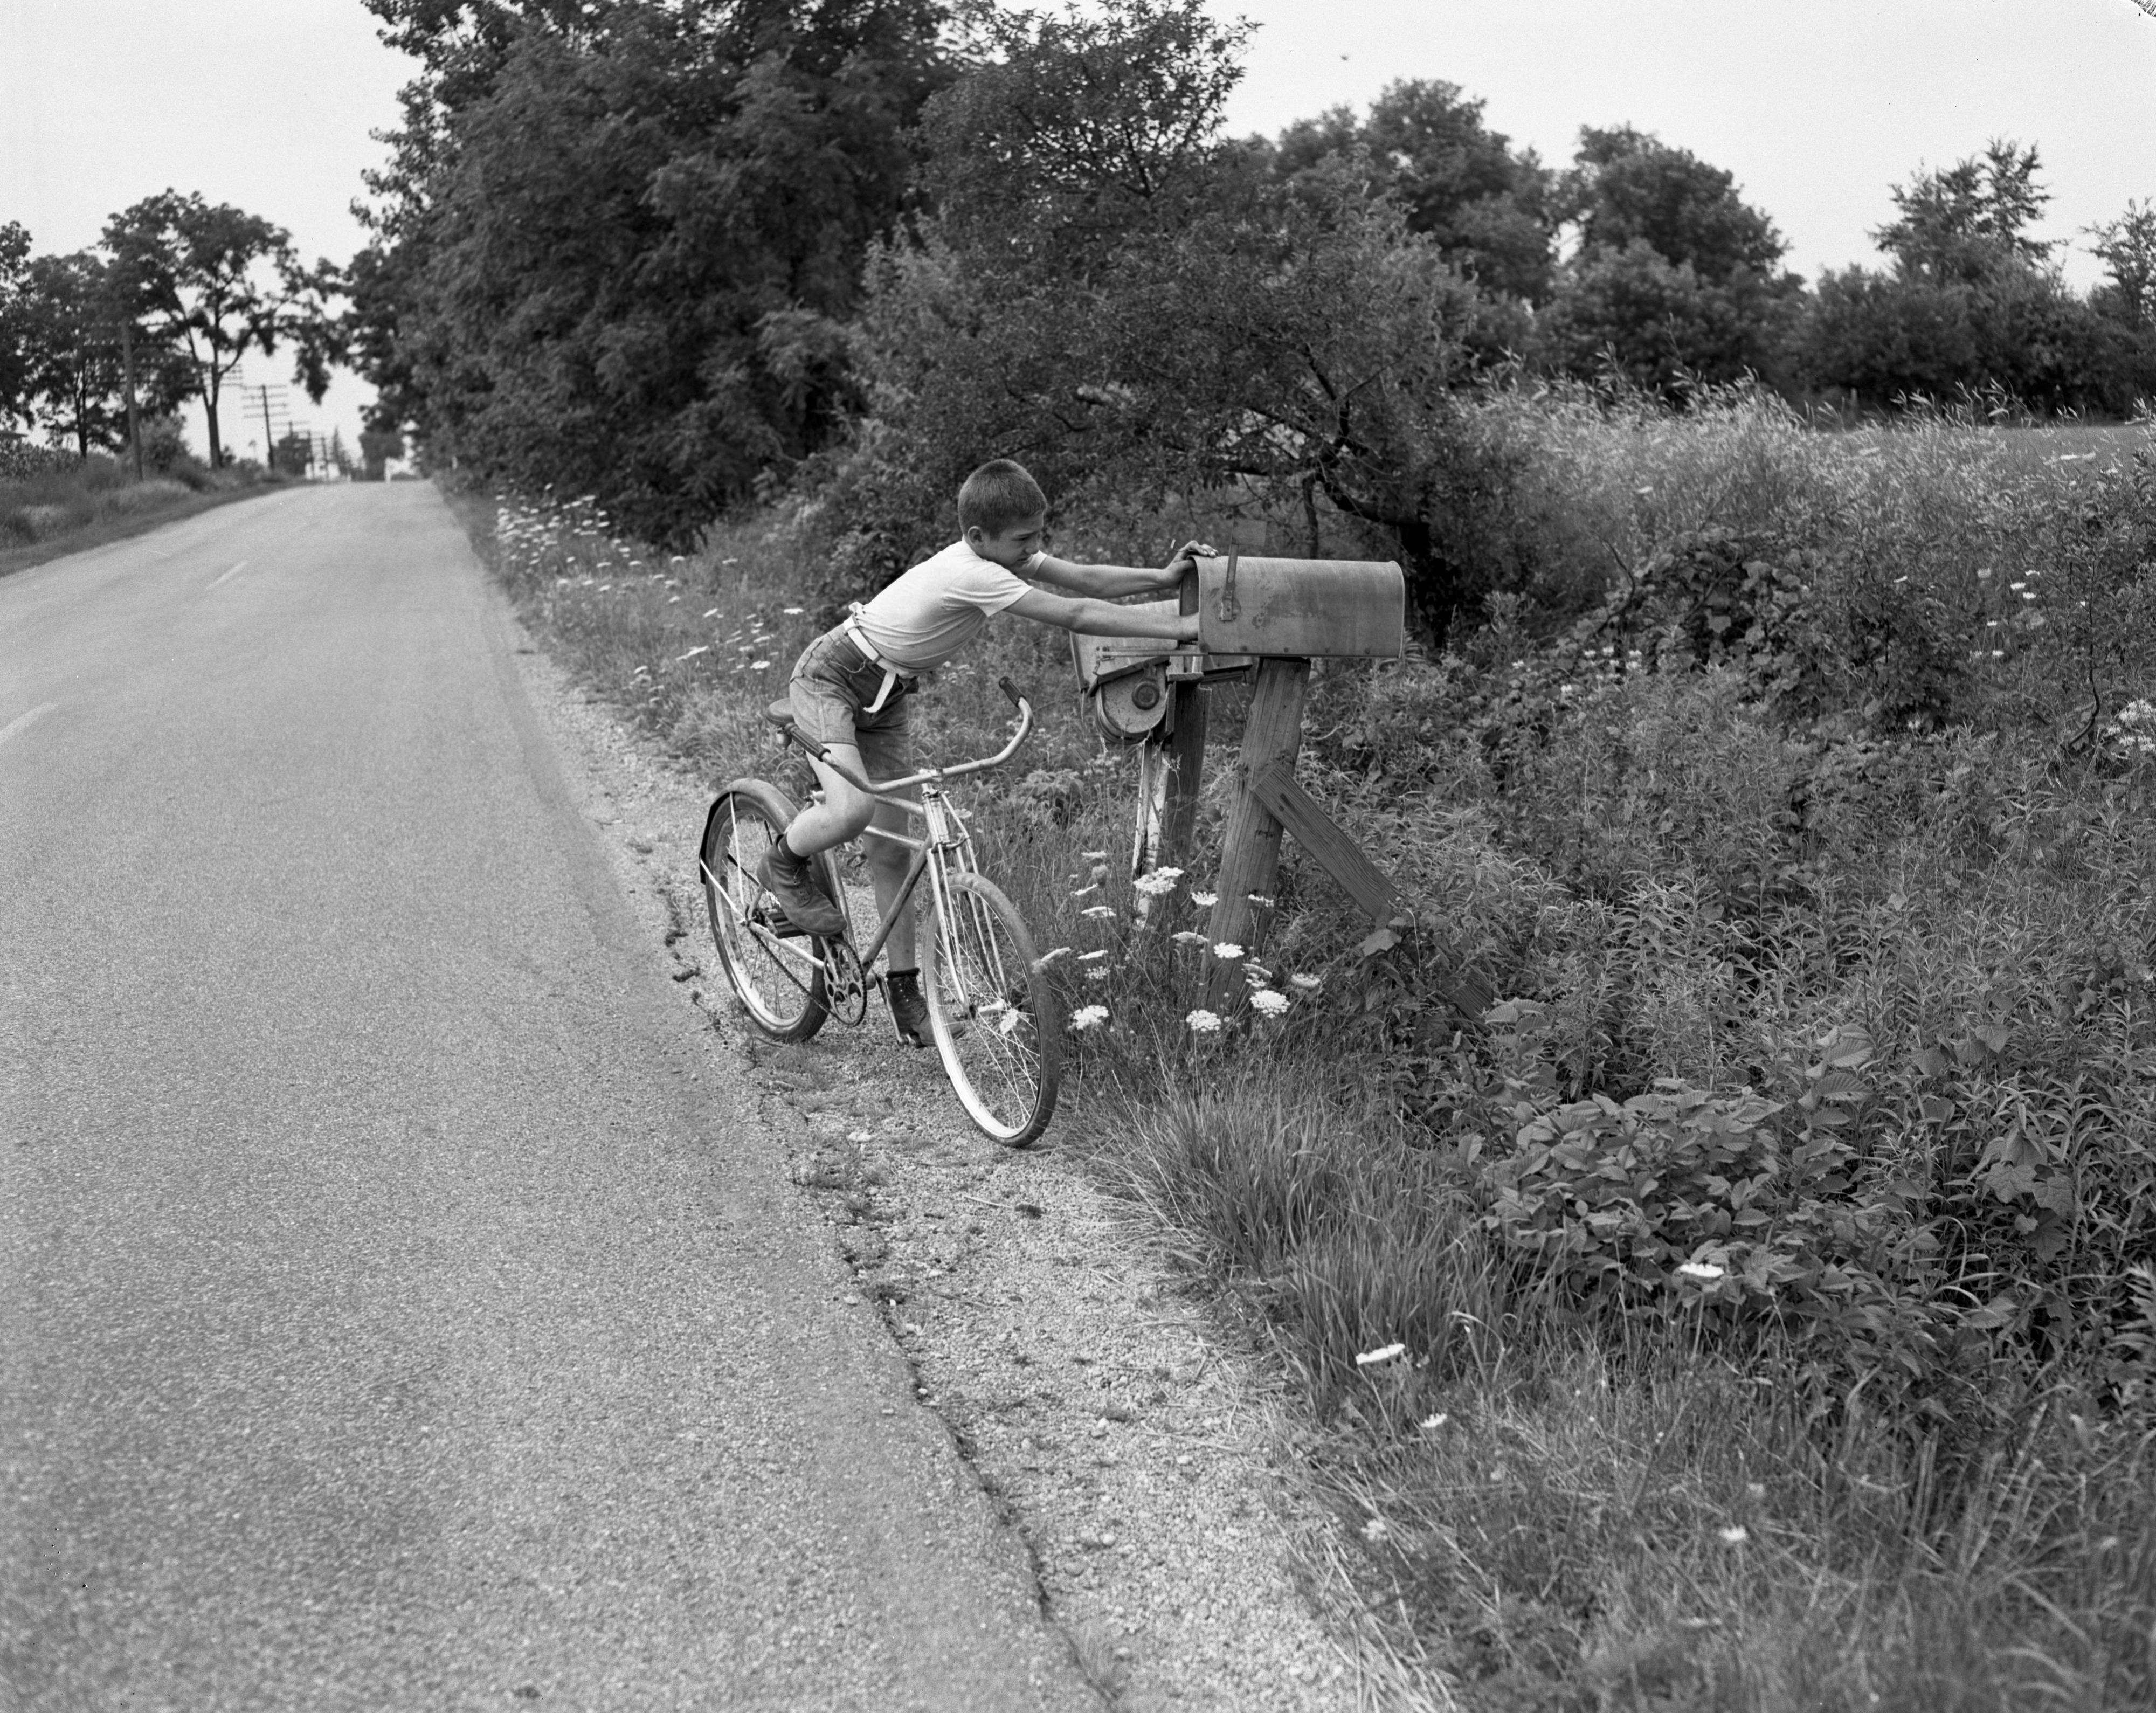 Dale Schultz at his family's mailbox, July 1954 image